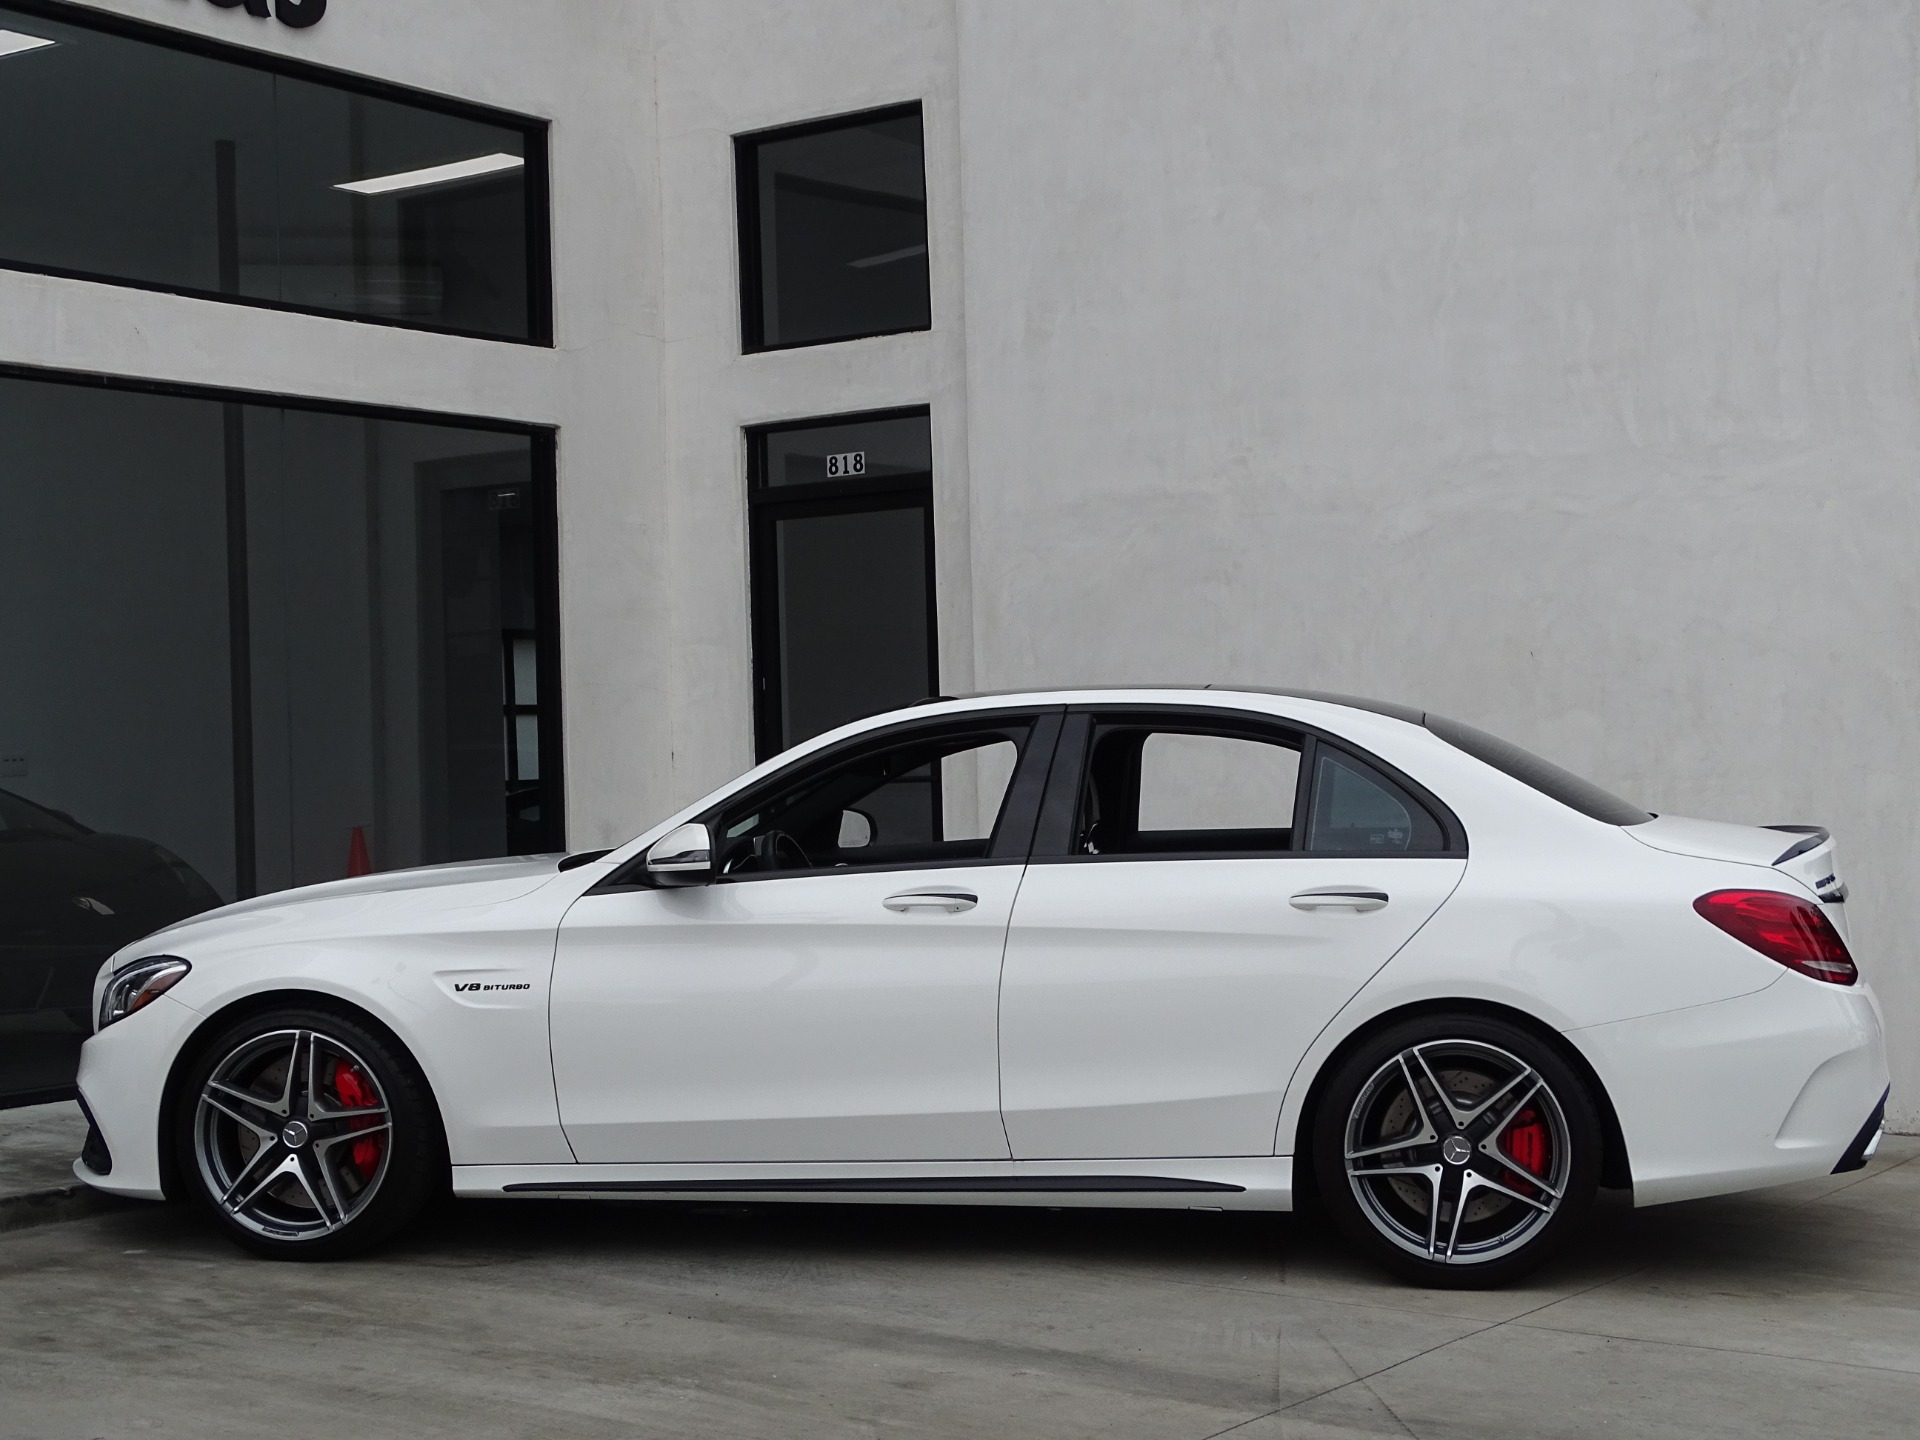 2016 mercedes benz c class amg c63 s performance exhaust stock 6266 for sale near. Black Bedroom Furniture Sets. Home Design Ideas